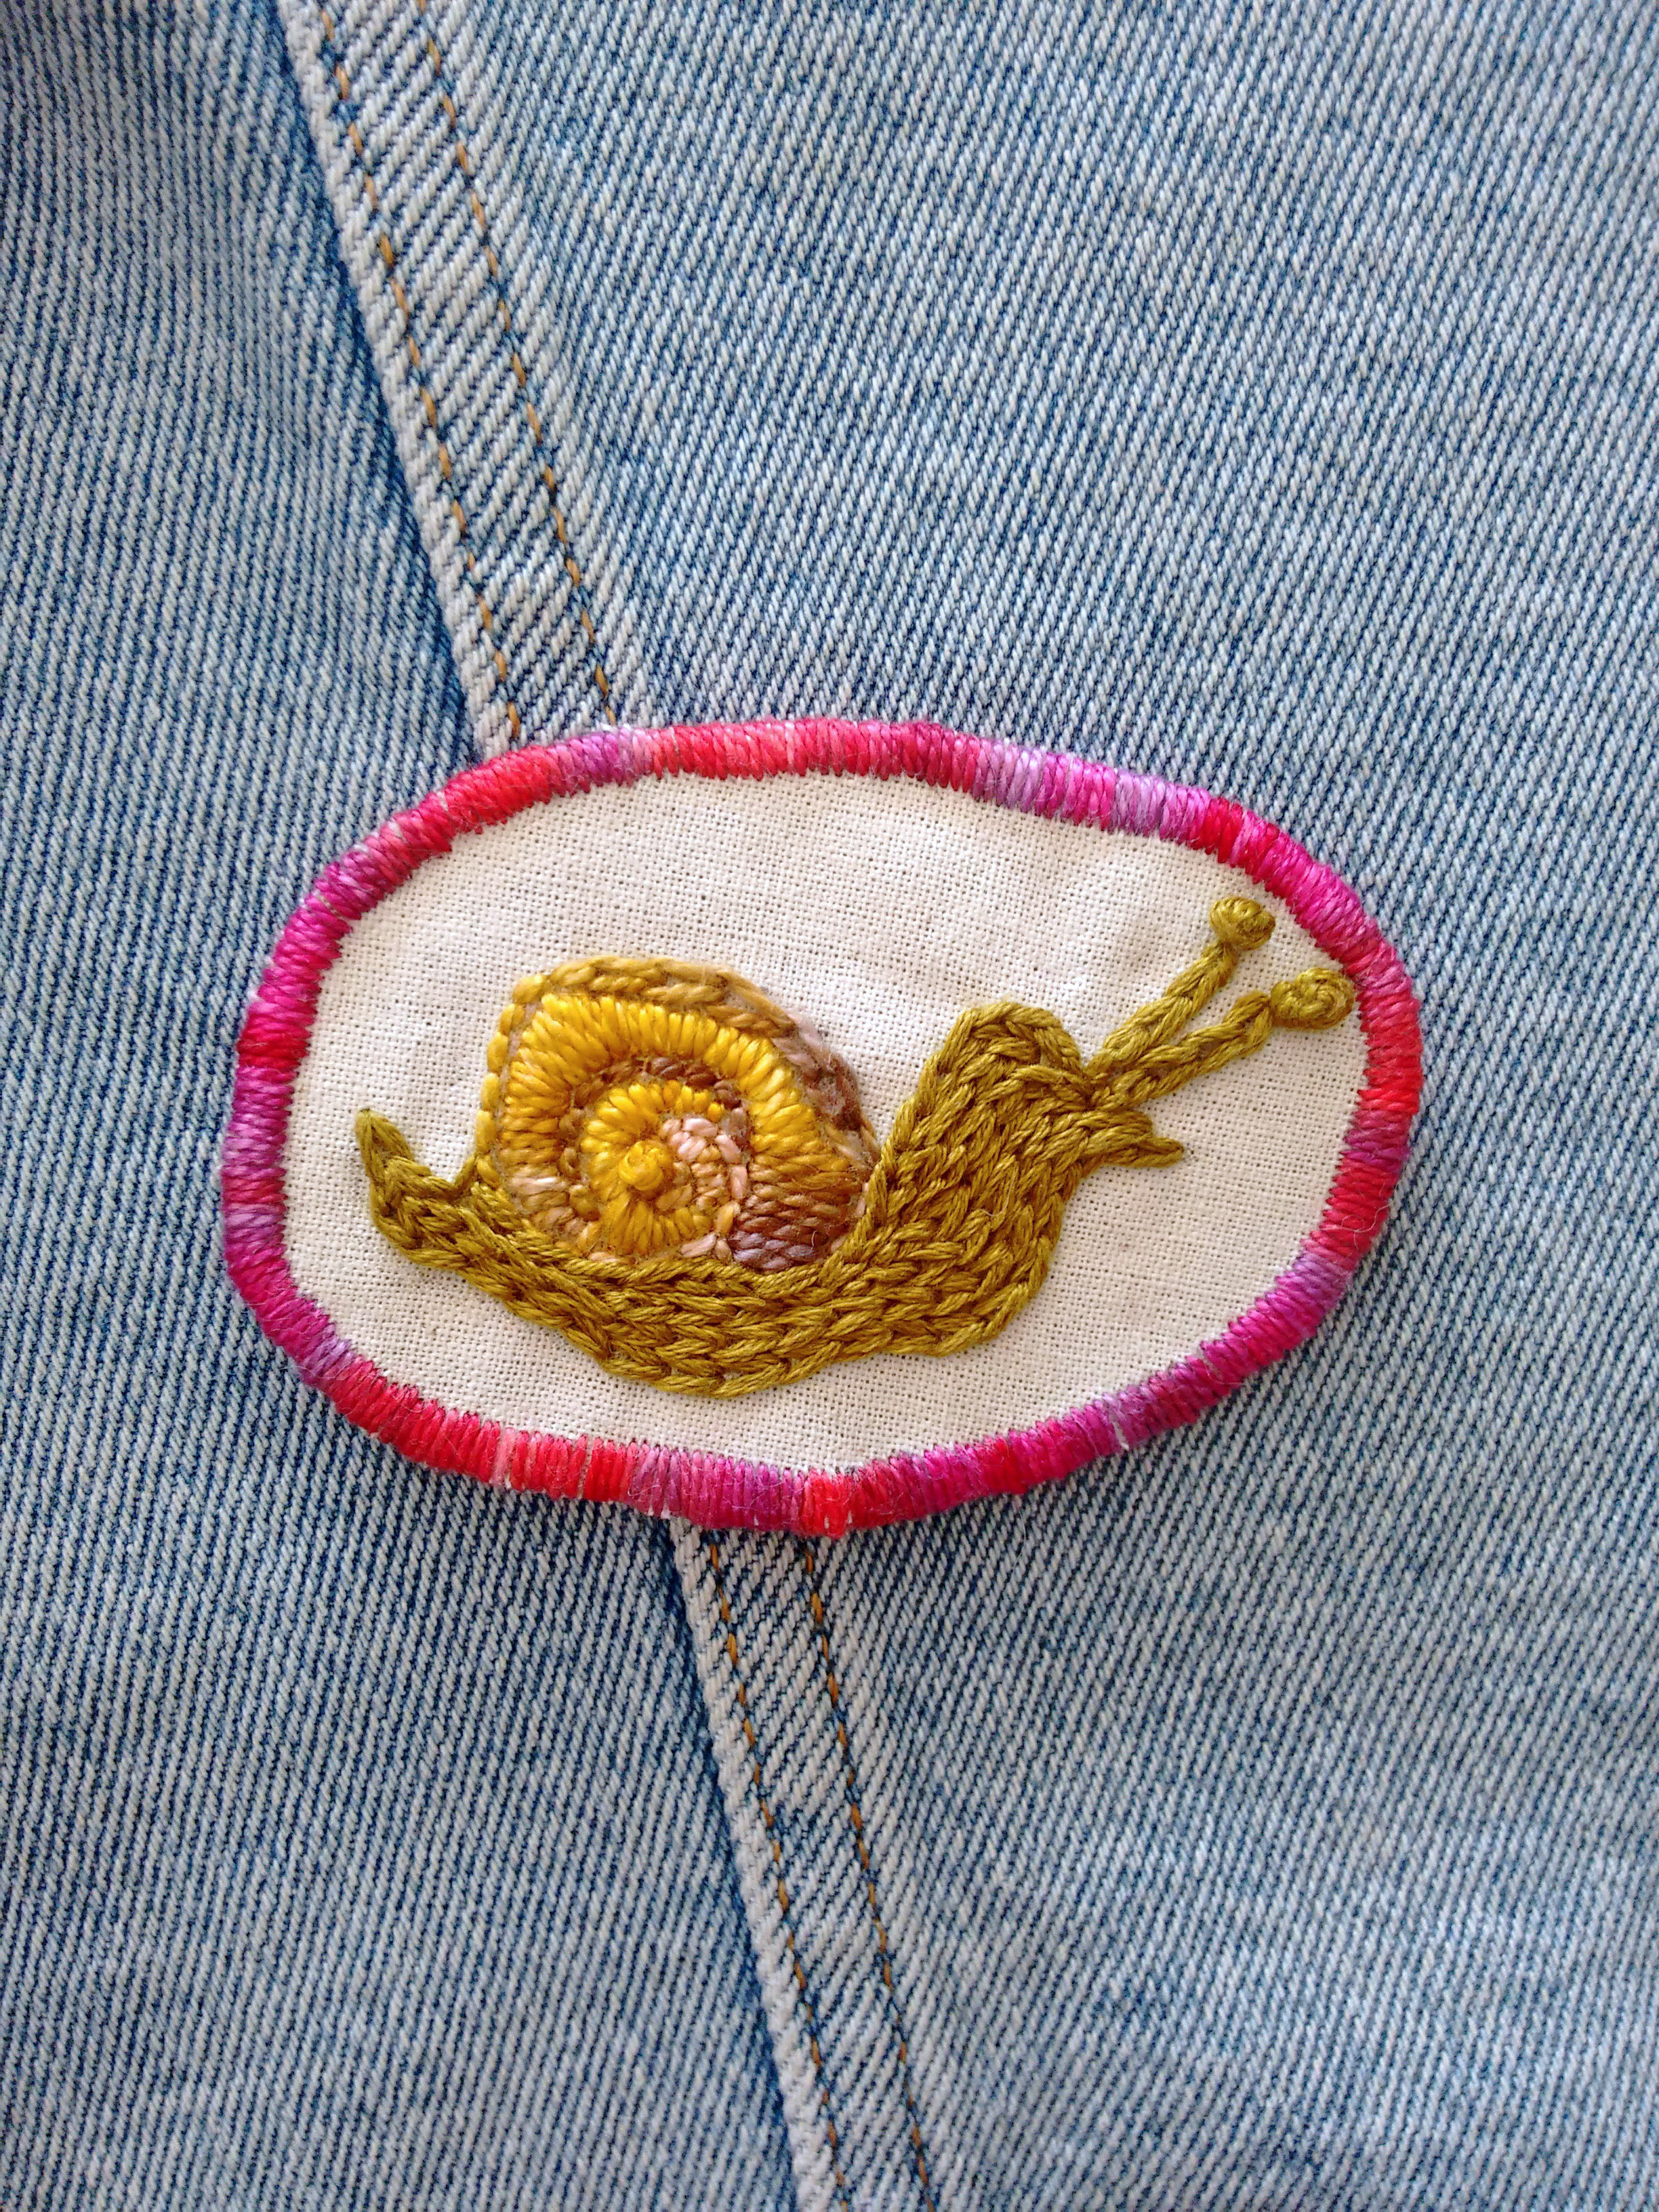 Embroidered snail patch with a red trim